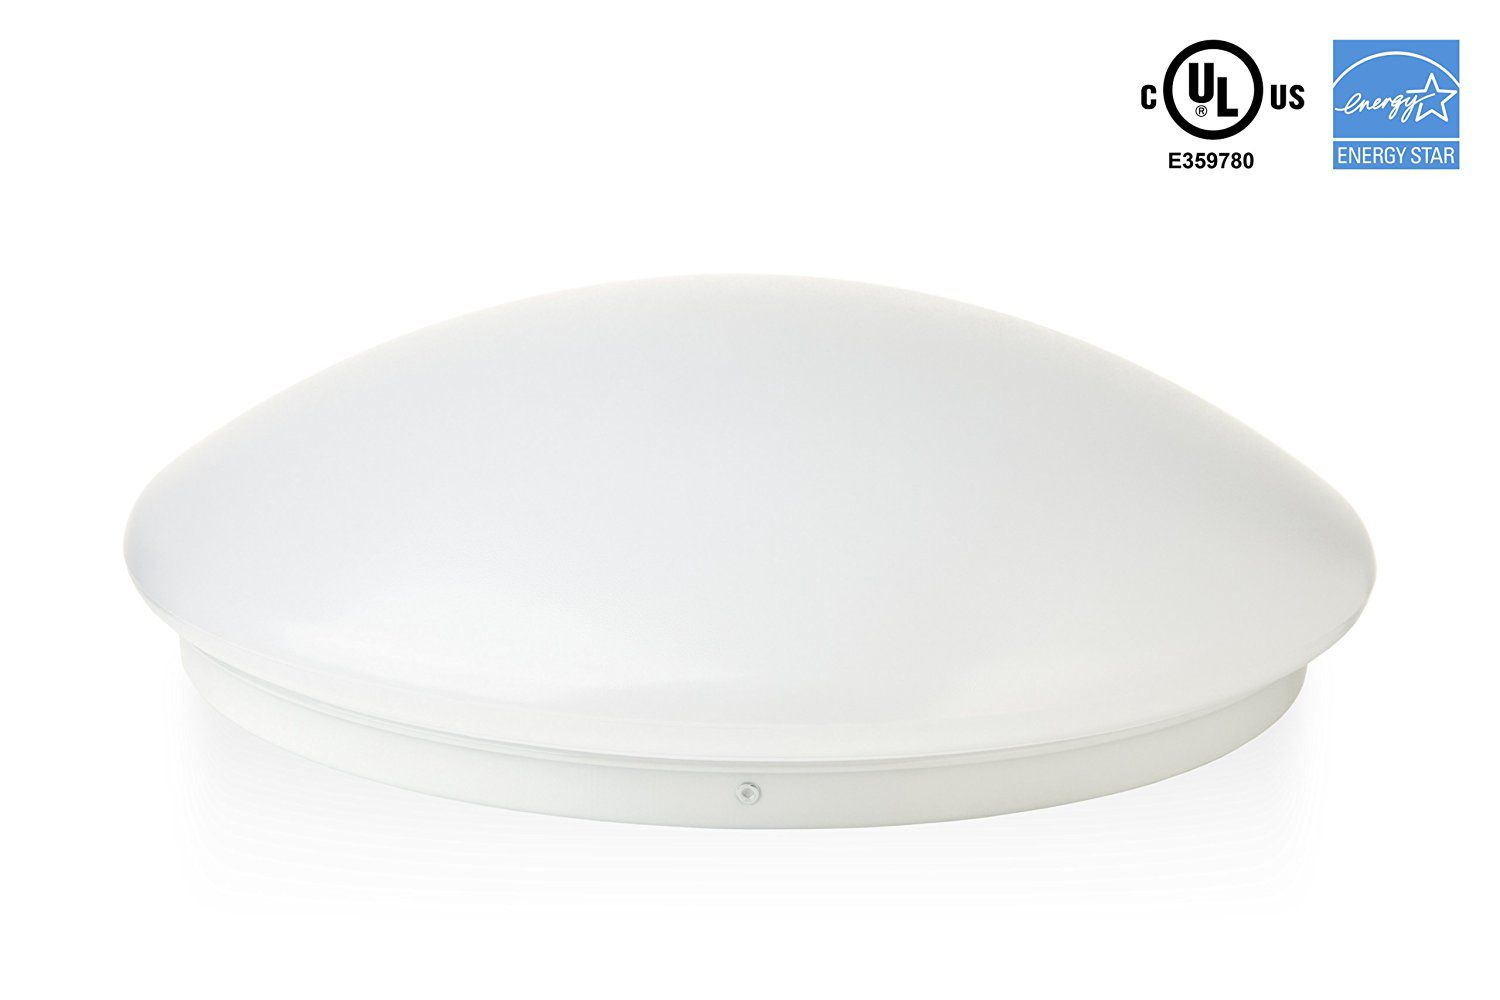 """Hyperikon LED Flush Mount Ceiling Light, 16"""", 35W (150W equivalent), 3100lm, 4000K (Daylight Glow), 120° Beam Angle, 120-240V, UL and ENERGY STAR Listed, 16-Inch Flush Mount, Instant-On"""